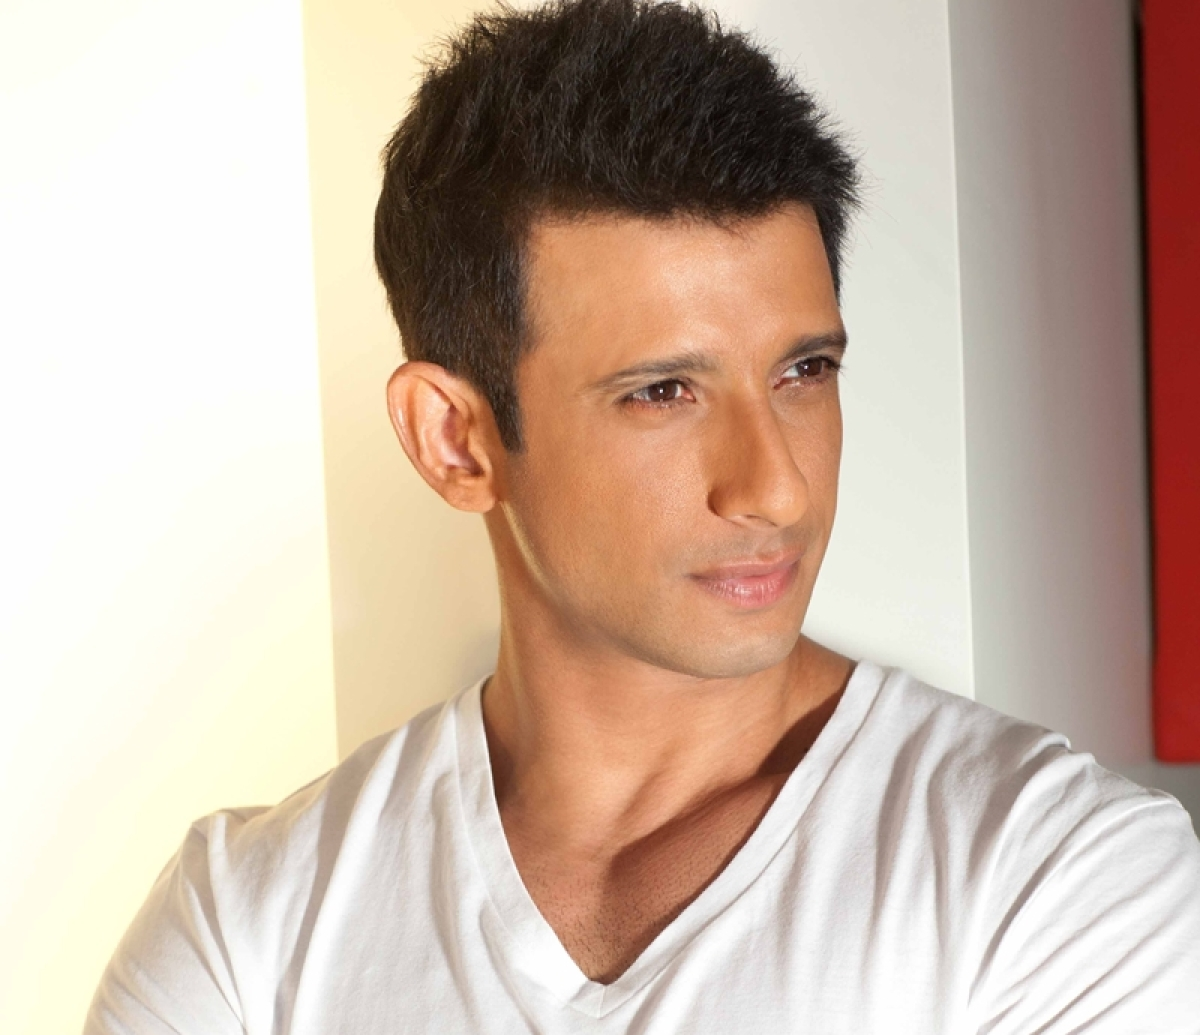 Sharman Joshi: A book needs to capture my attention